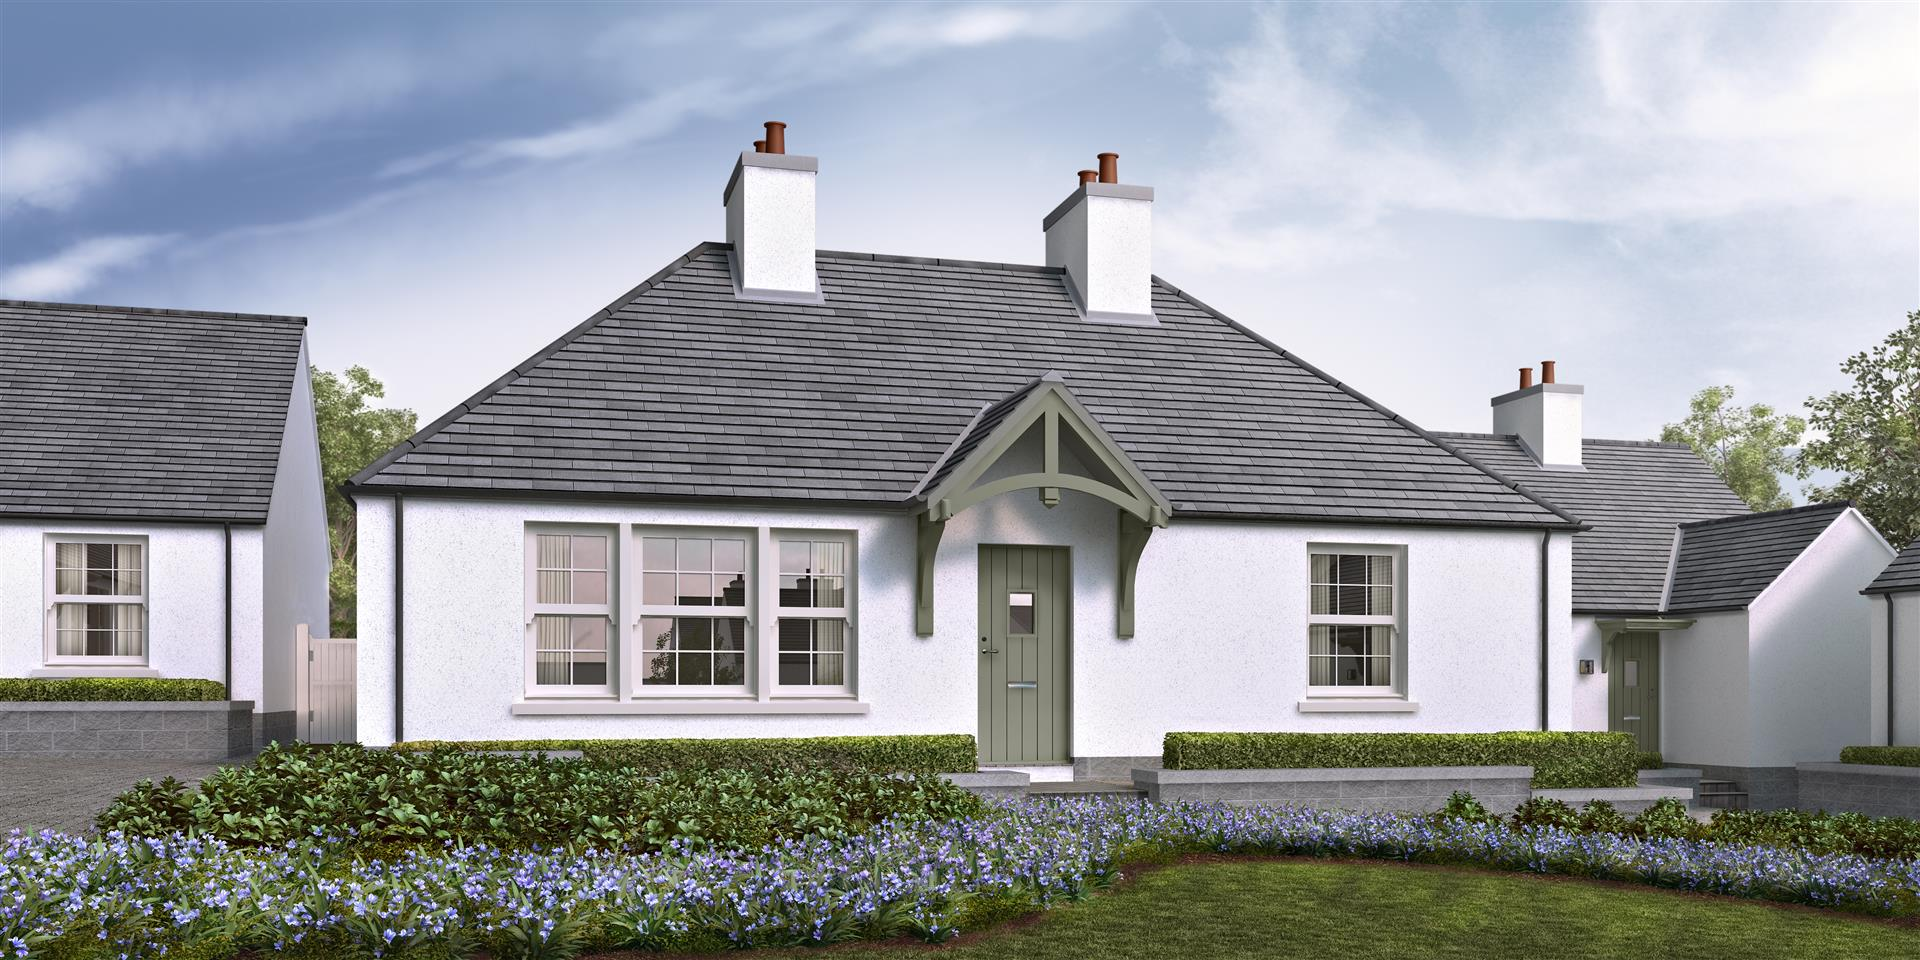 New build homes and houses for sale in Chapelton, Aberdeenshire